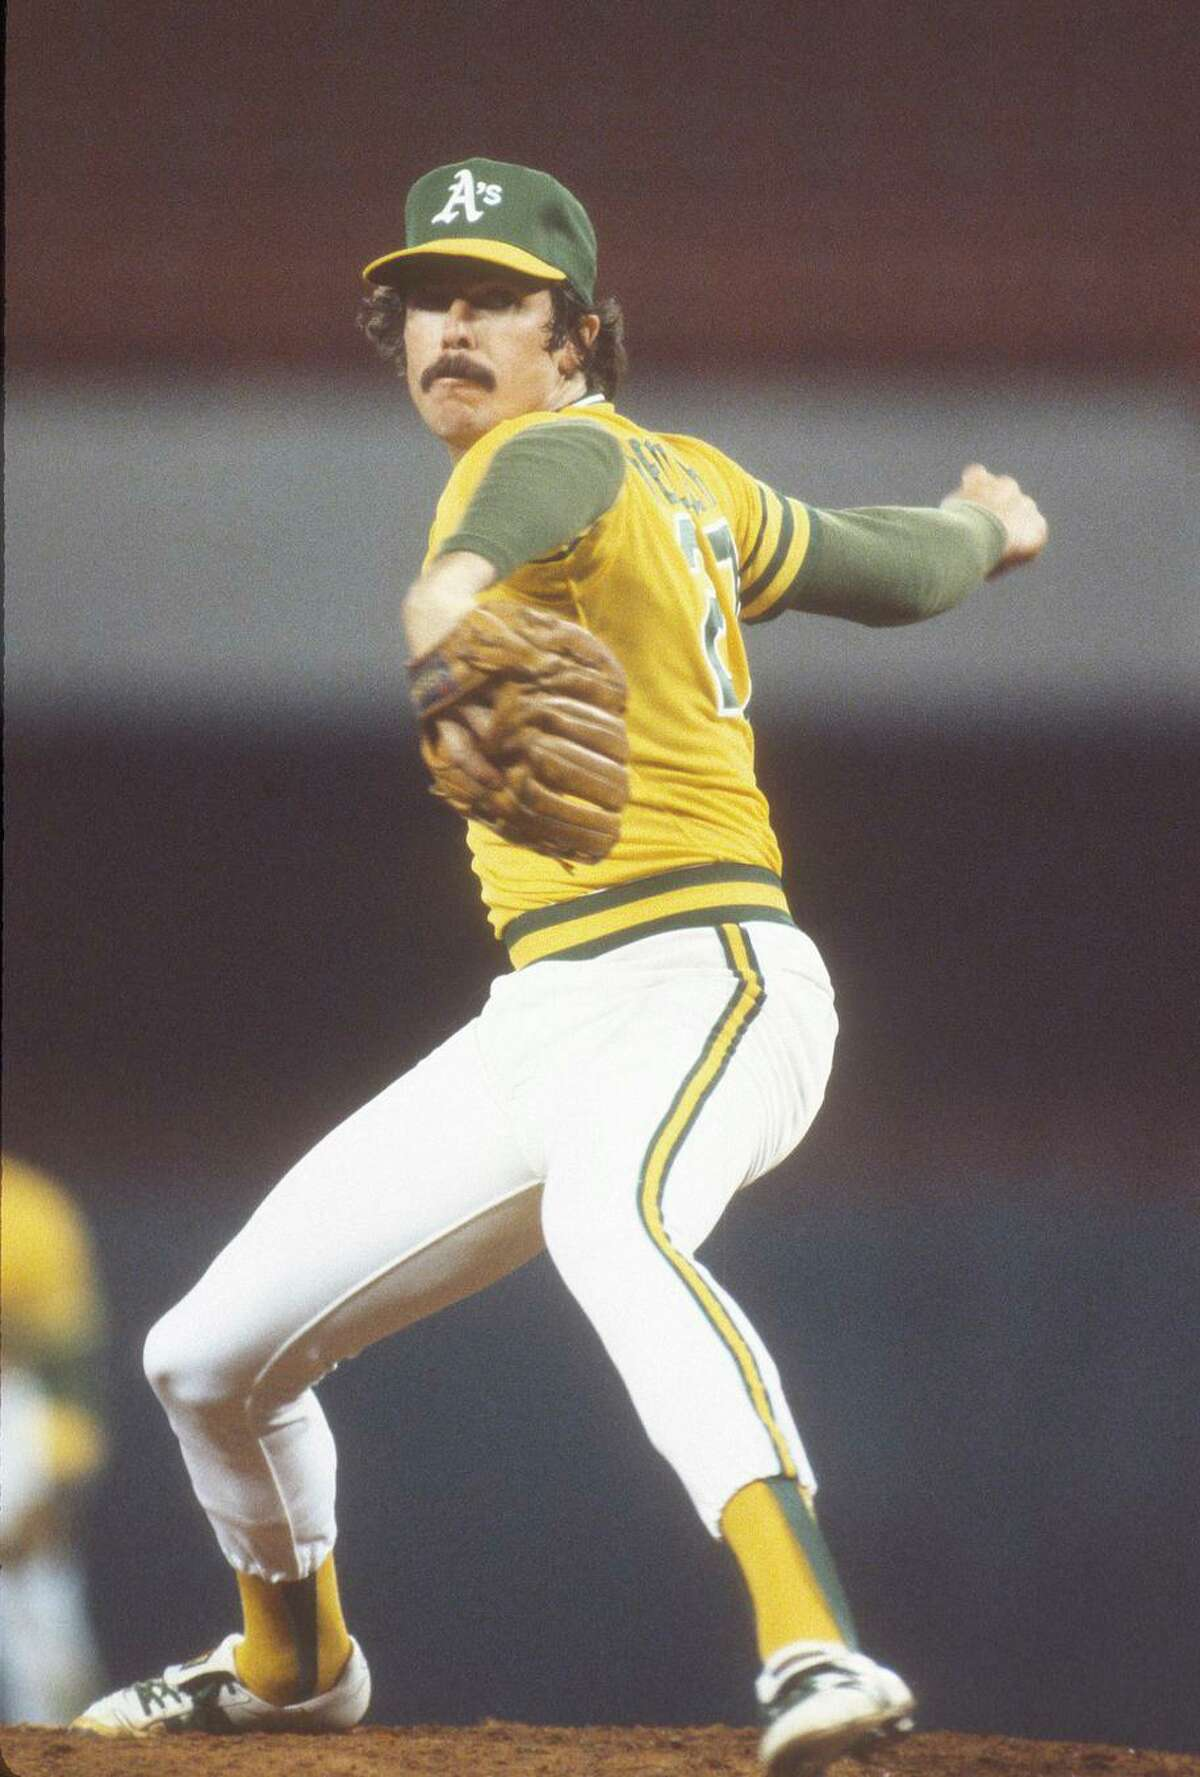 Matt Keough was signed as a shortstop, then converted to the mound, finishing his major-league career with a 58-84 record.